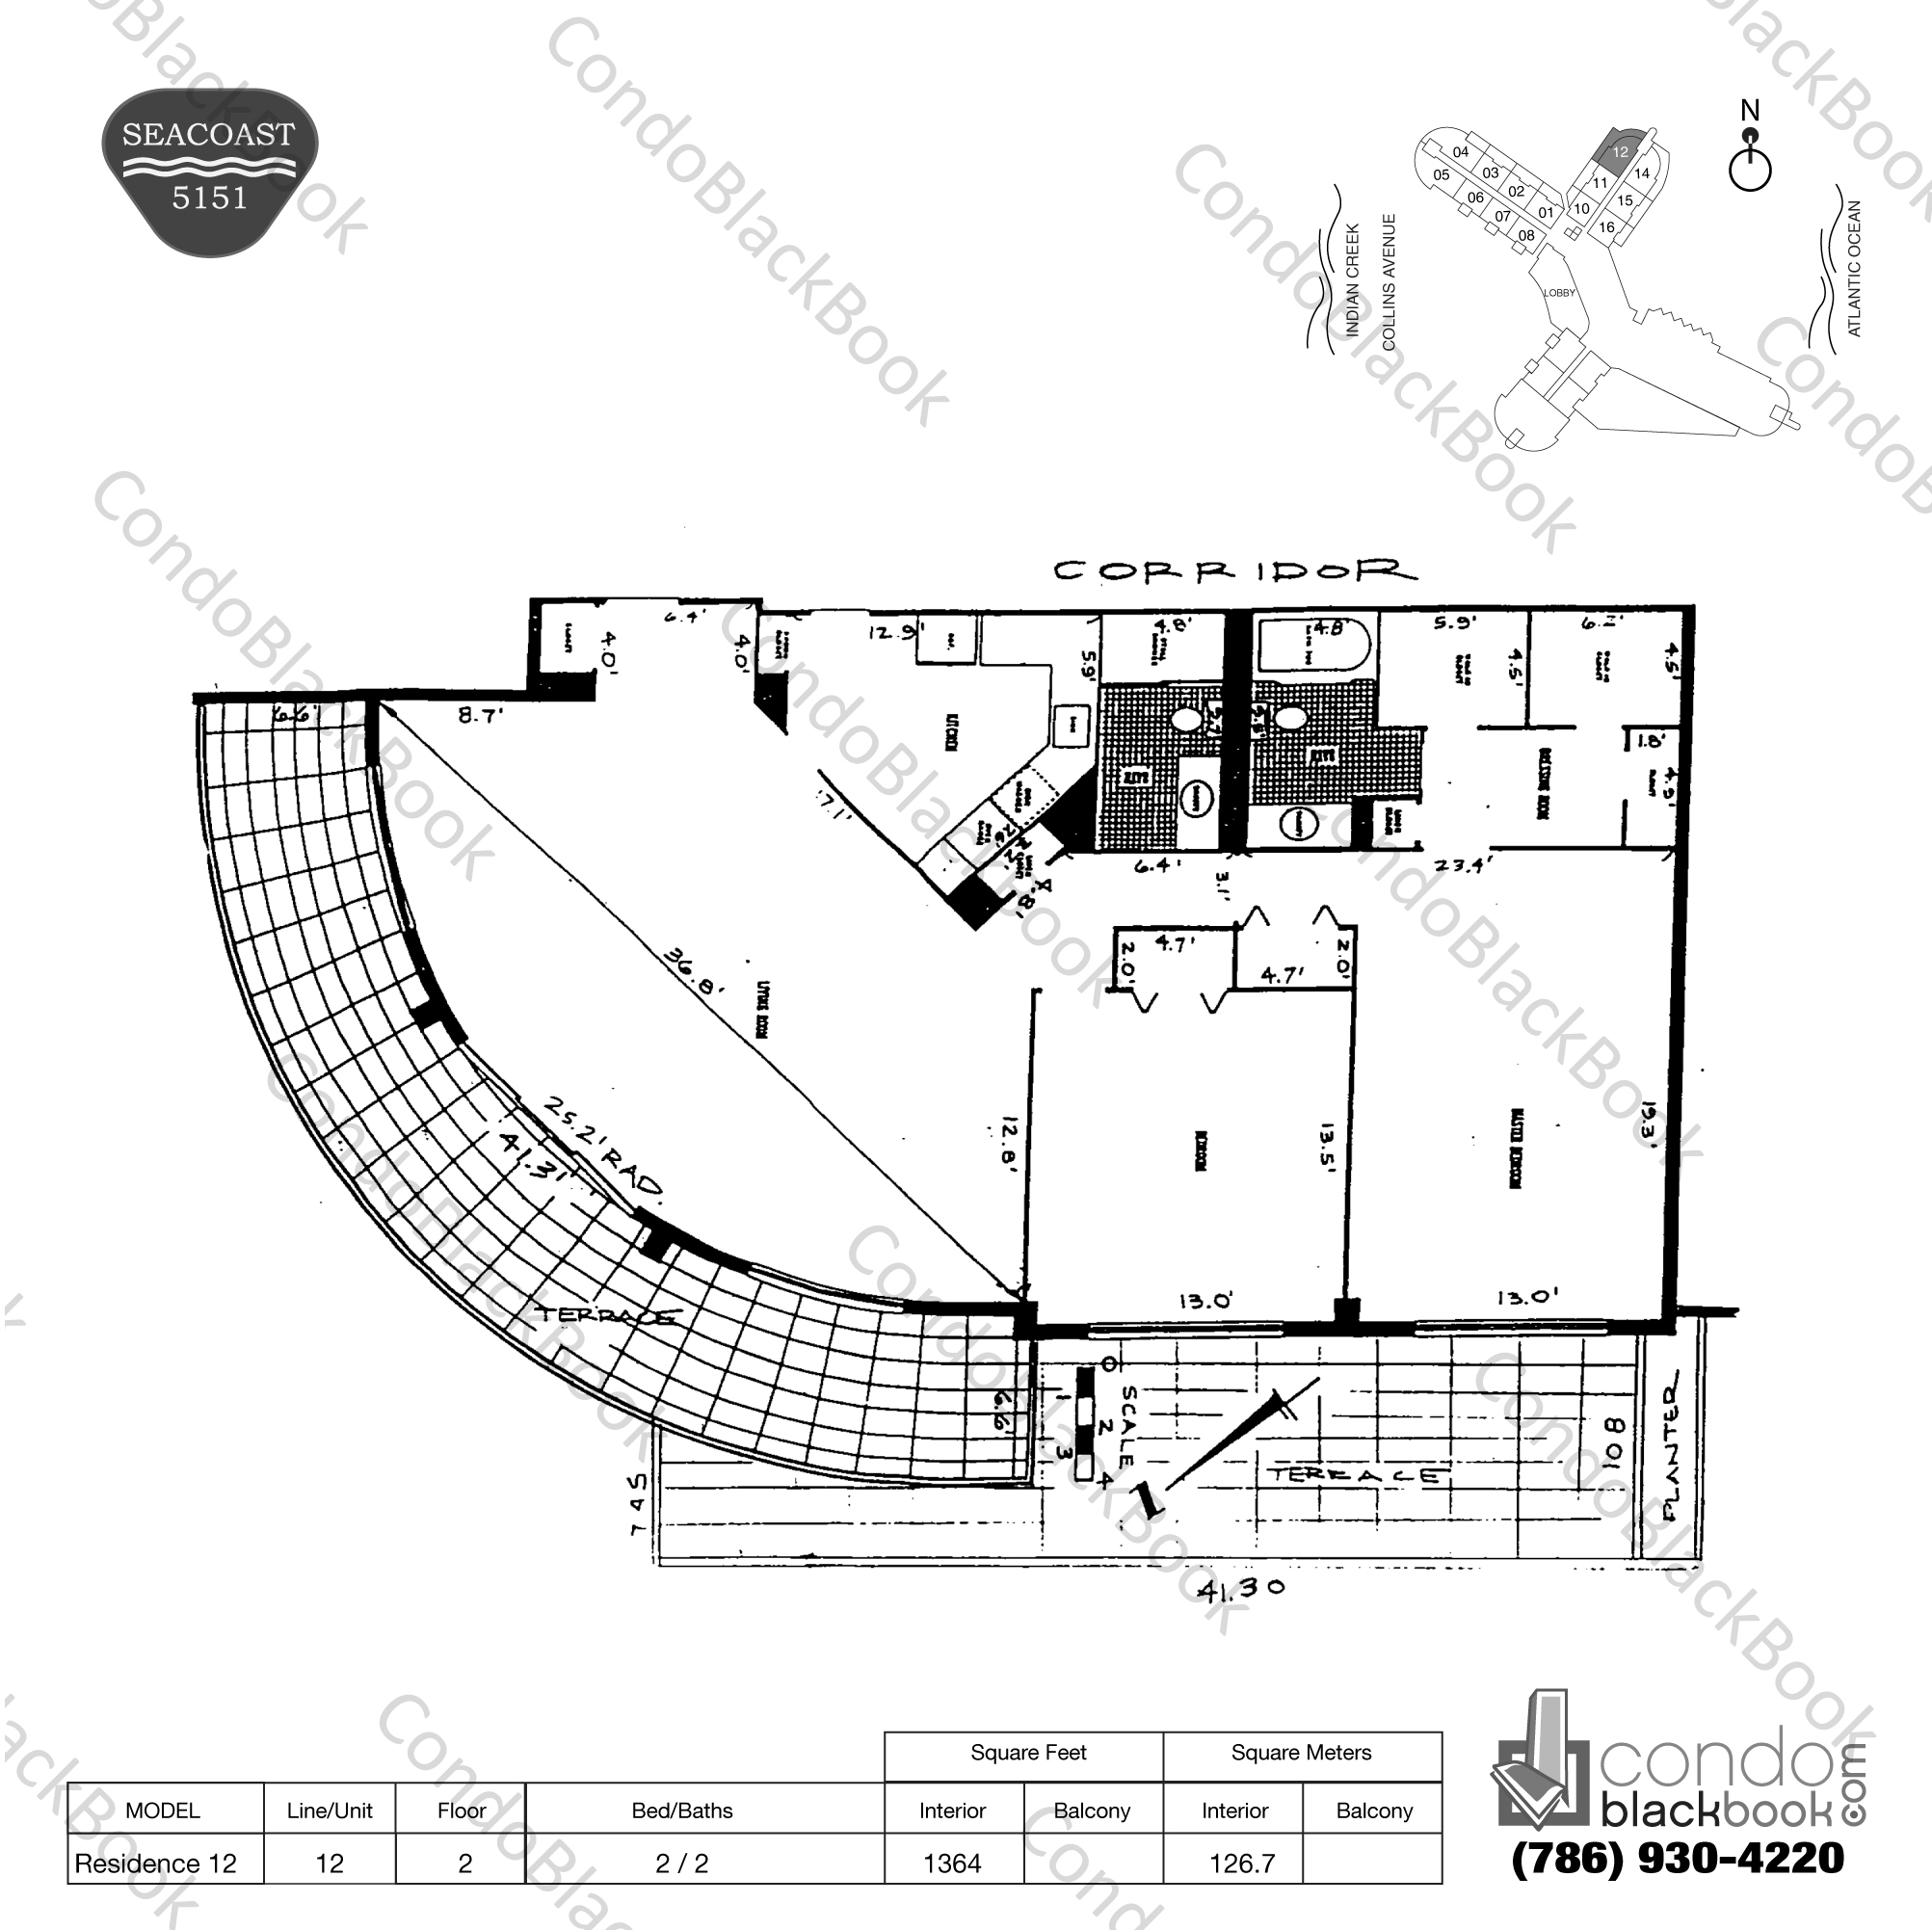 Floor plan for Seacoast 5151 Mid-Beach Miami Beach, model Residence 12, line 12, 2 / 2 bedrooms, 1364 sq ft